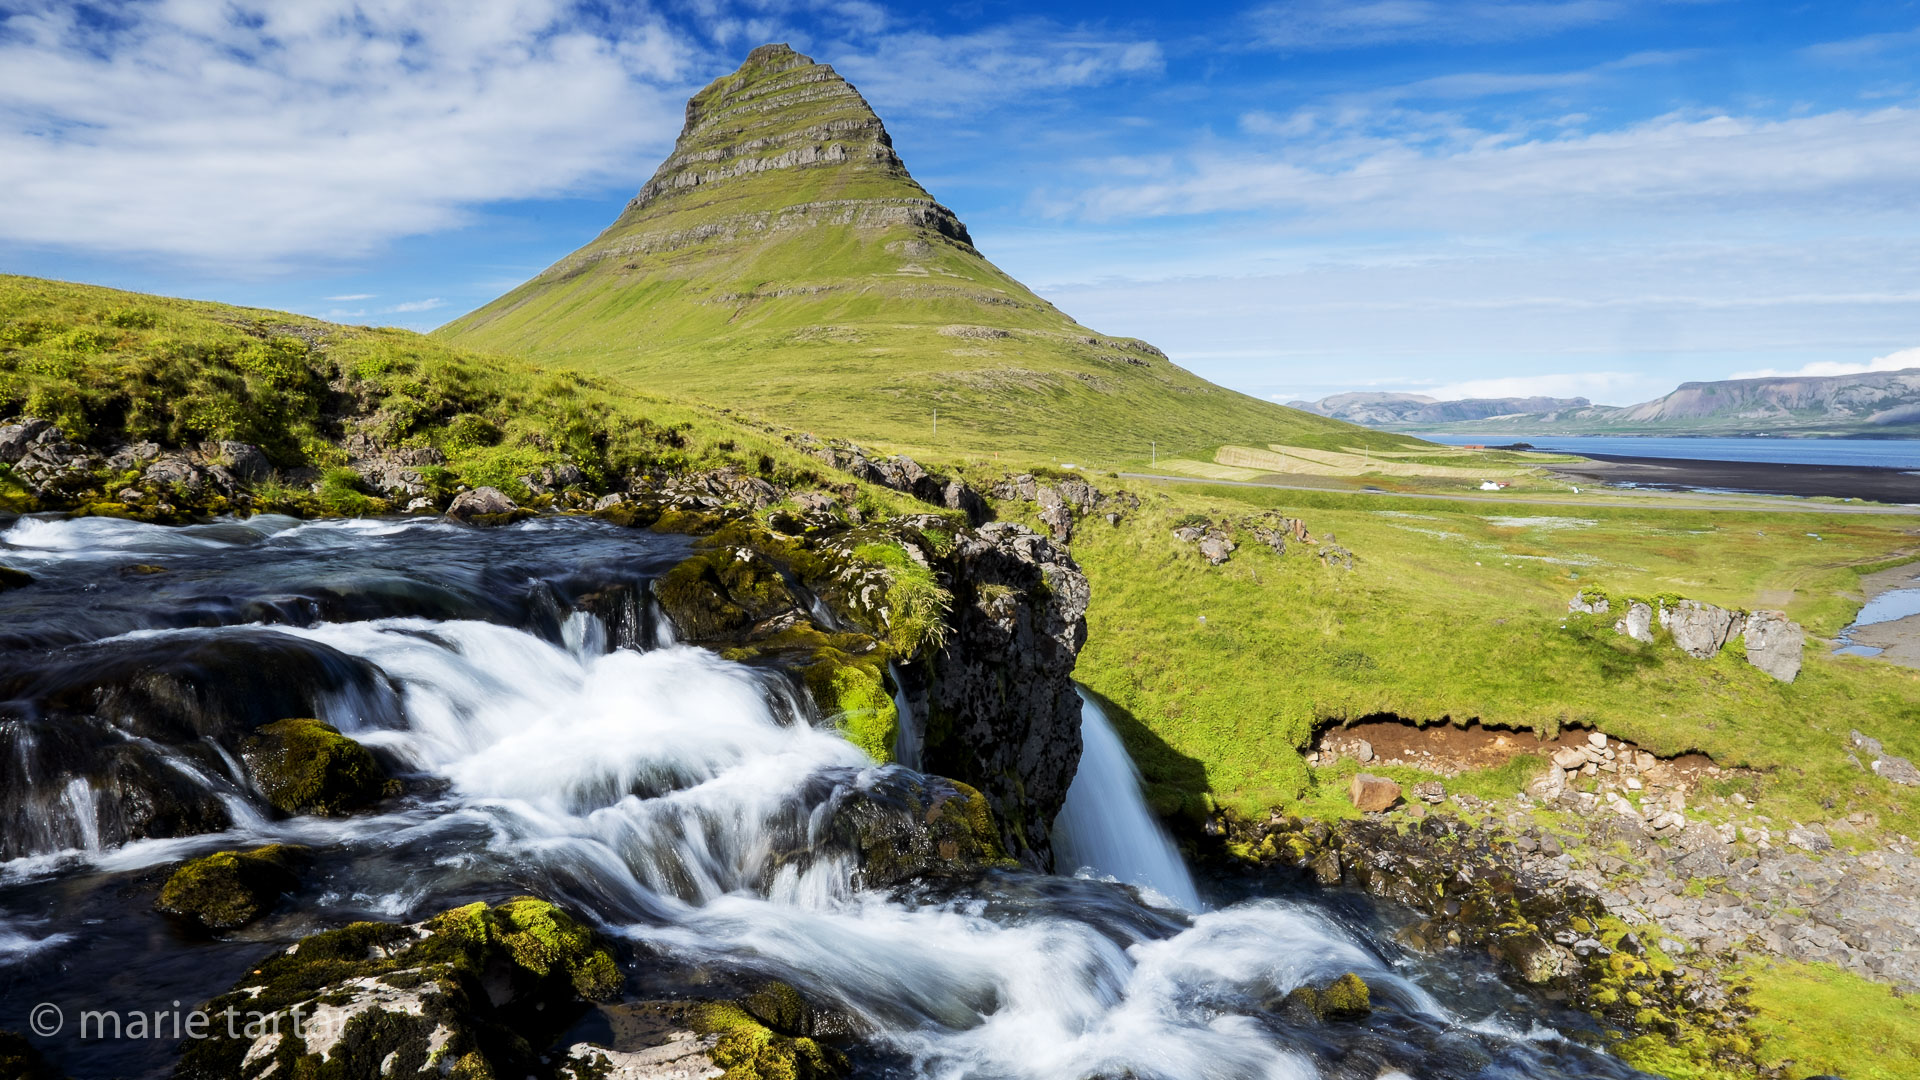 Mount Kirkjufell on the Snaefellsnes peninsula of Iceland